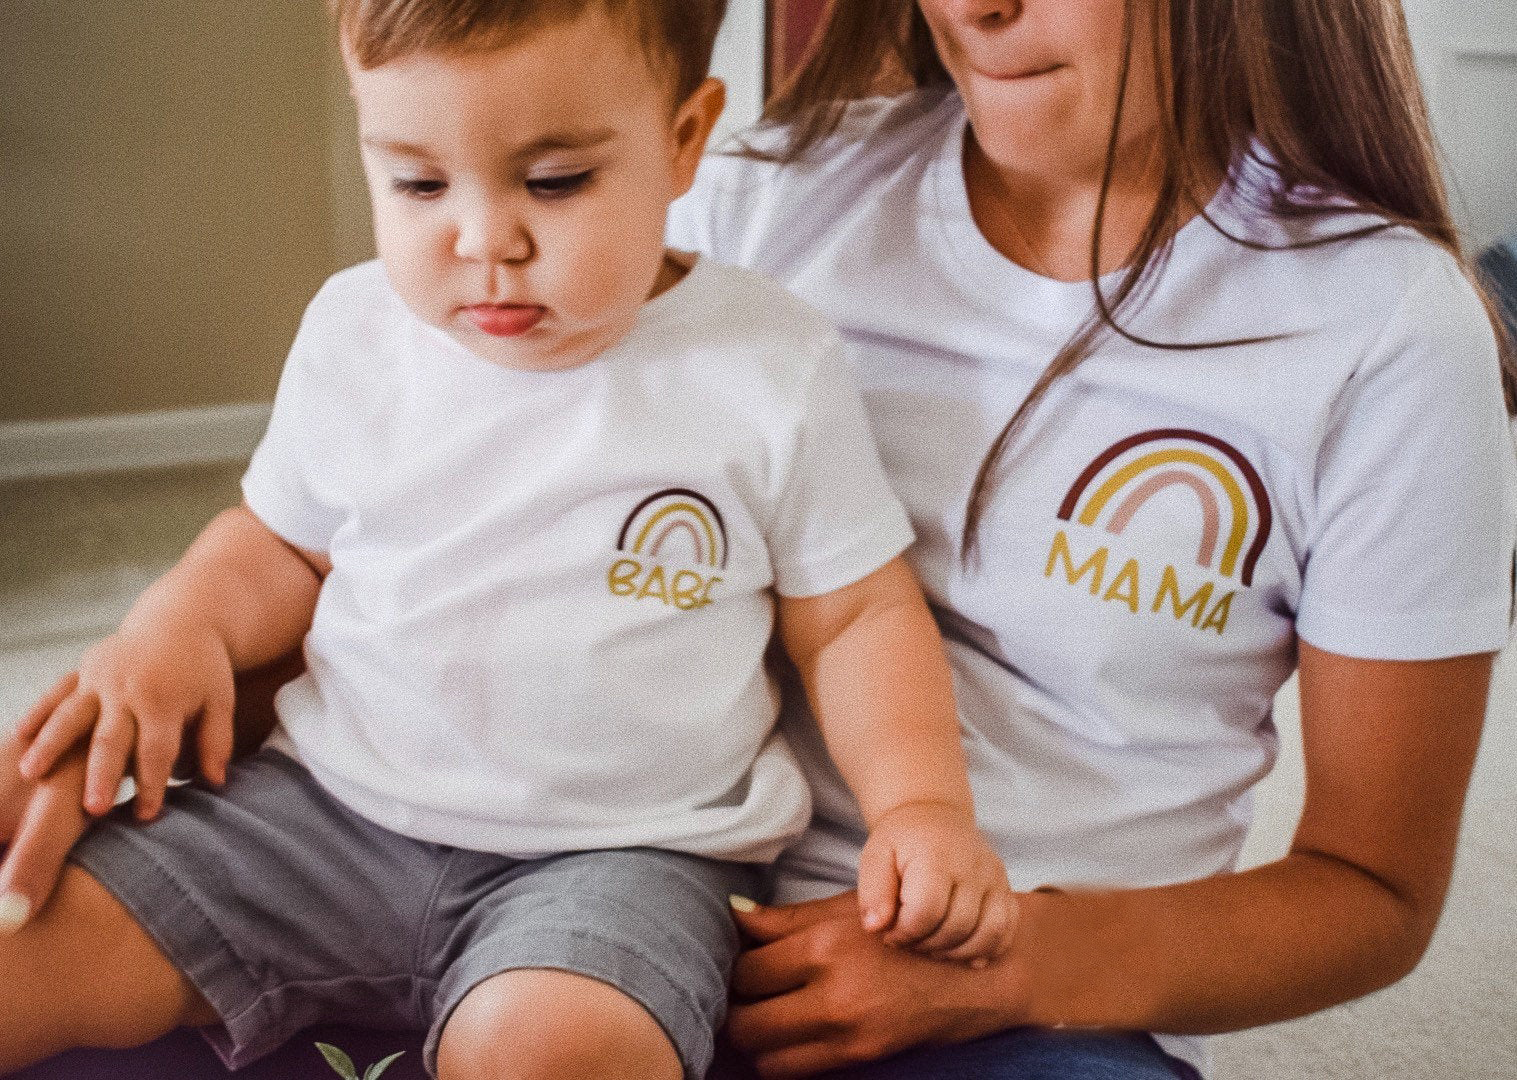 mama-and-babe-shirt-mom-and-baby-match-shirt-mom-and-children-tee-summer-short-sleeve-tops-t-shirts-mother's-day-gift-fashion